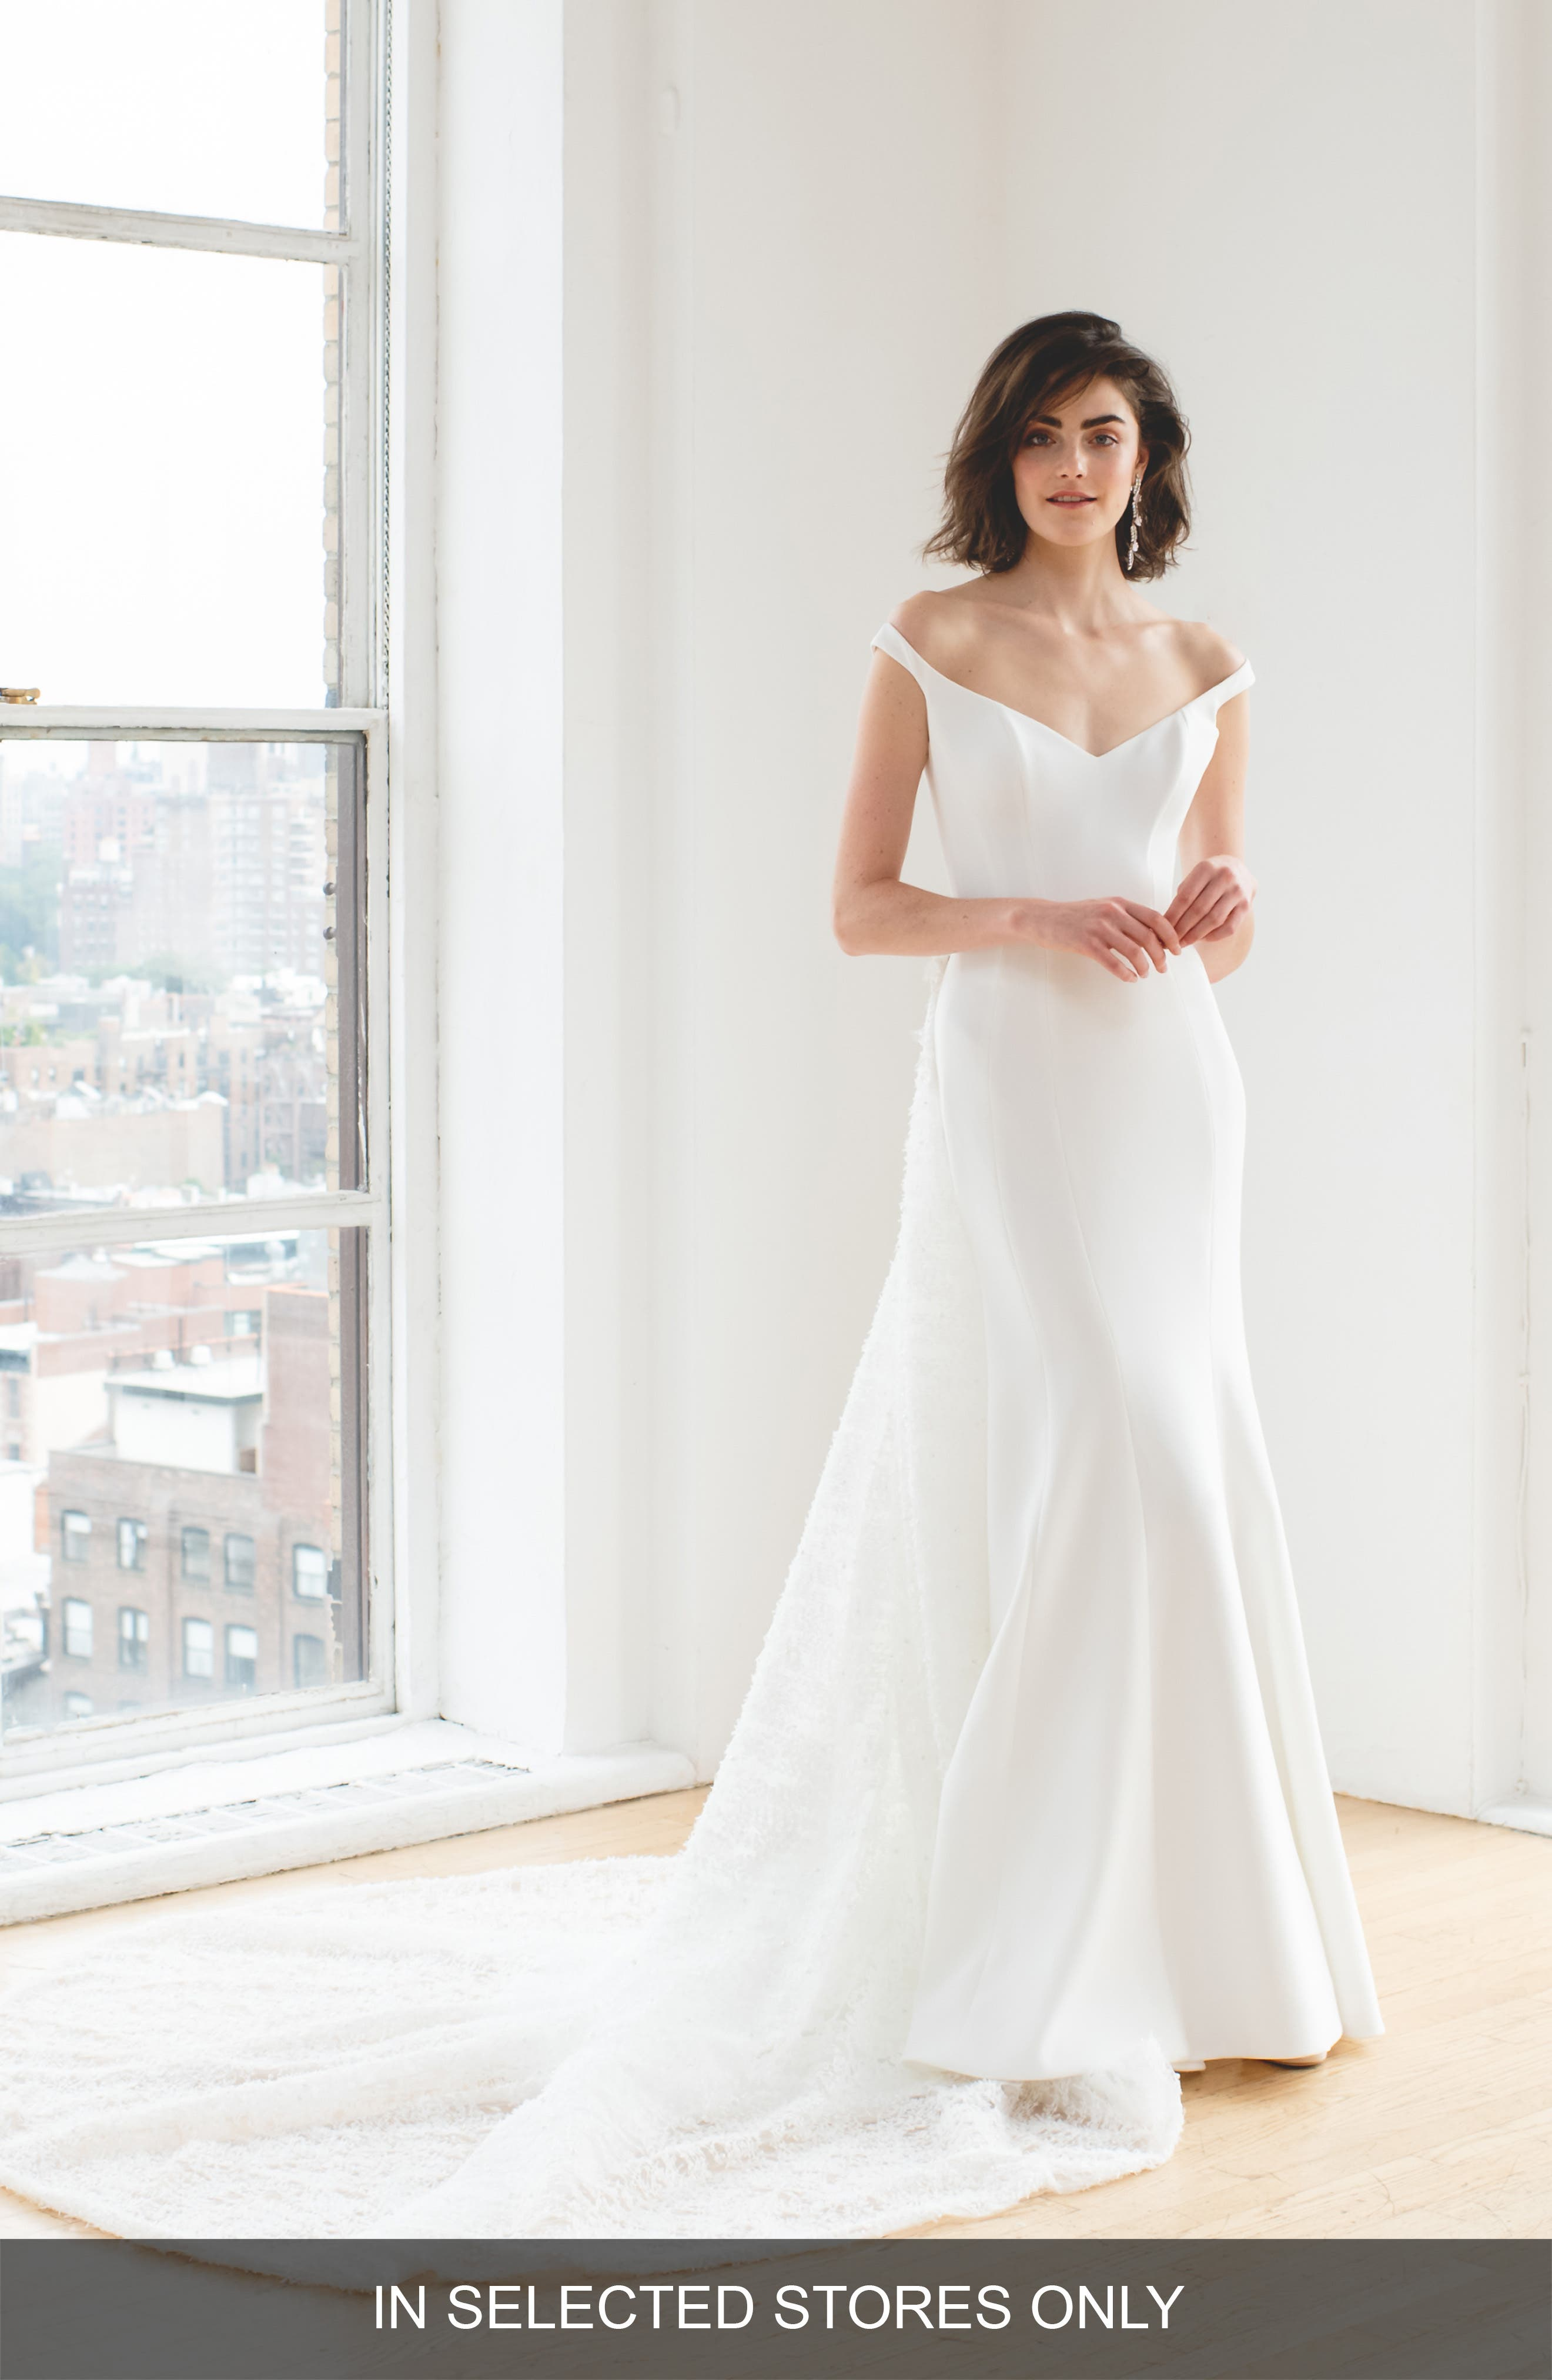 Ines By Ines Di Santo Maaike Off The Shoulder Wedding Dress, Size IN STORE ONLY - Ivory